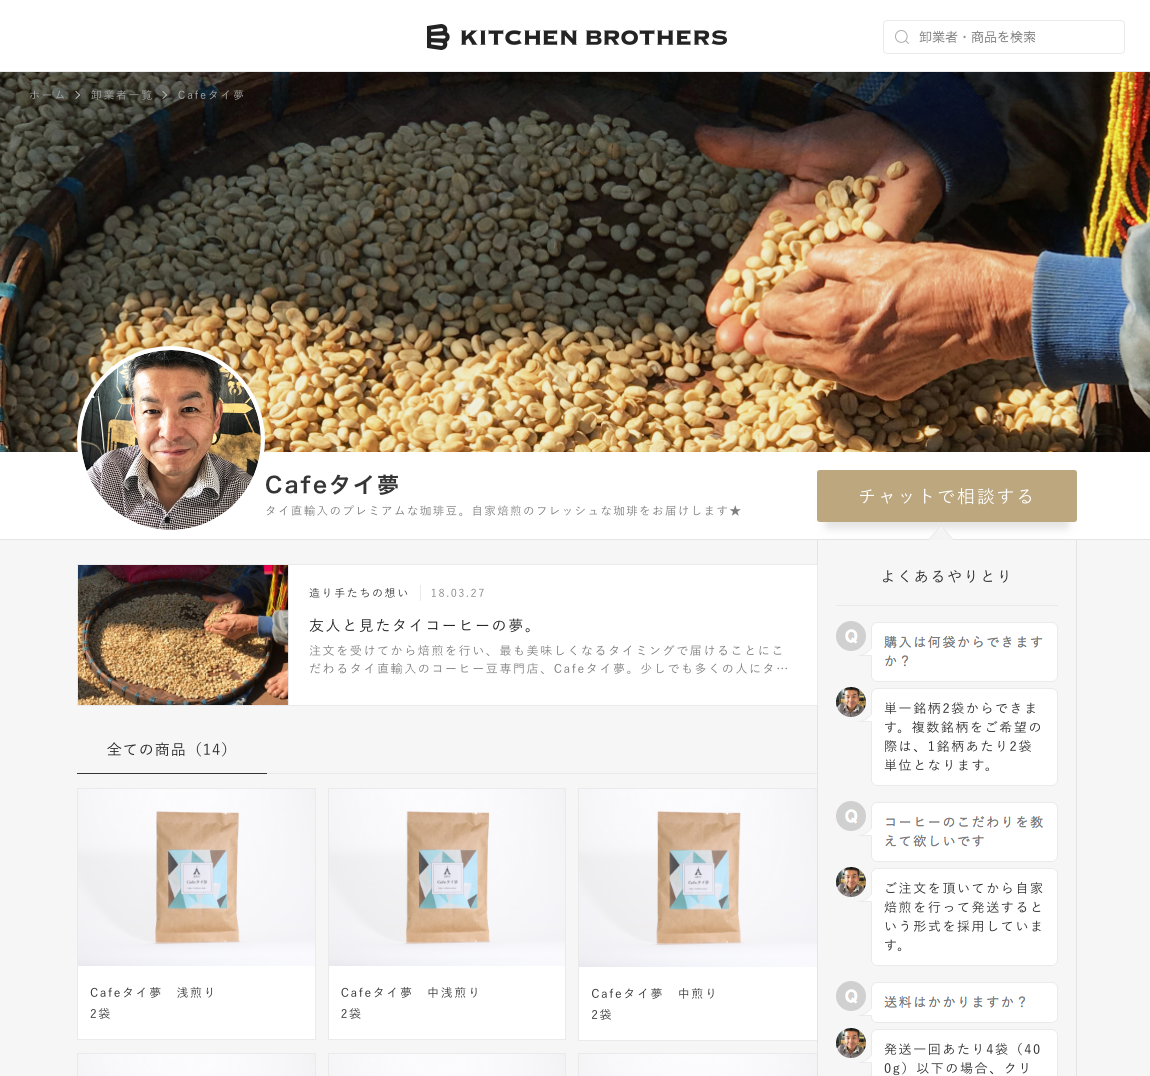 KITHCHEN BROTHERS とは? 飲食店様向け食材仕入れサイトです。・・・ 詳しくは、画像をクリックしてください(当店KITCHEN BROTHERS サイトへリンクします)。